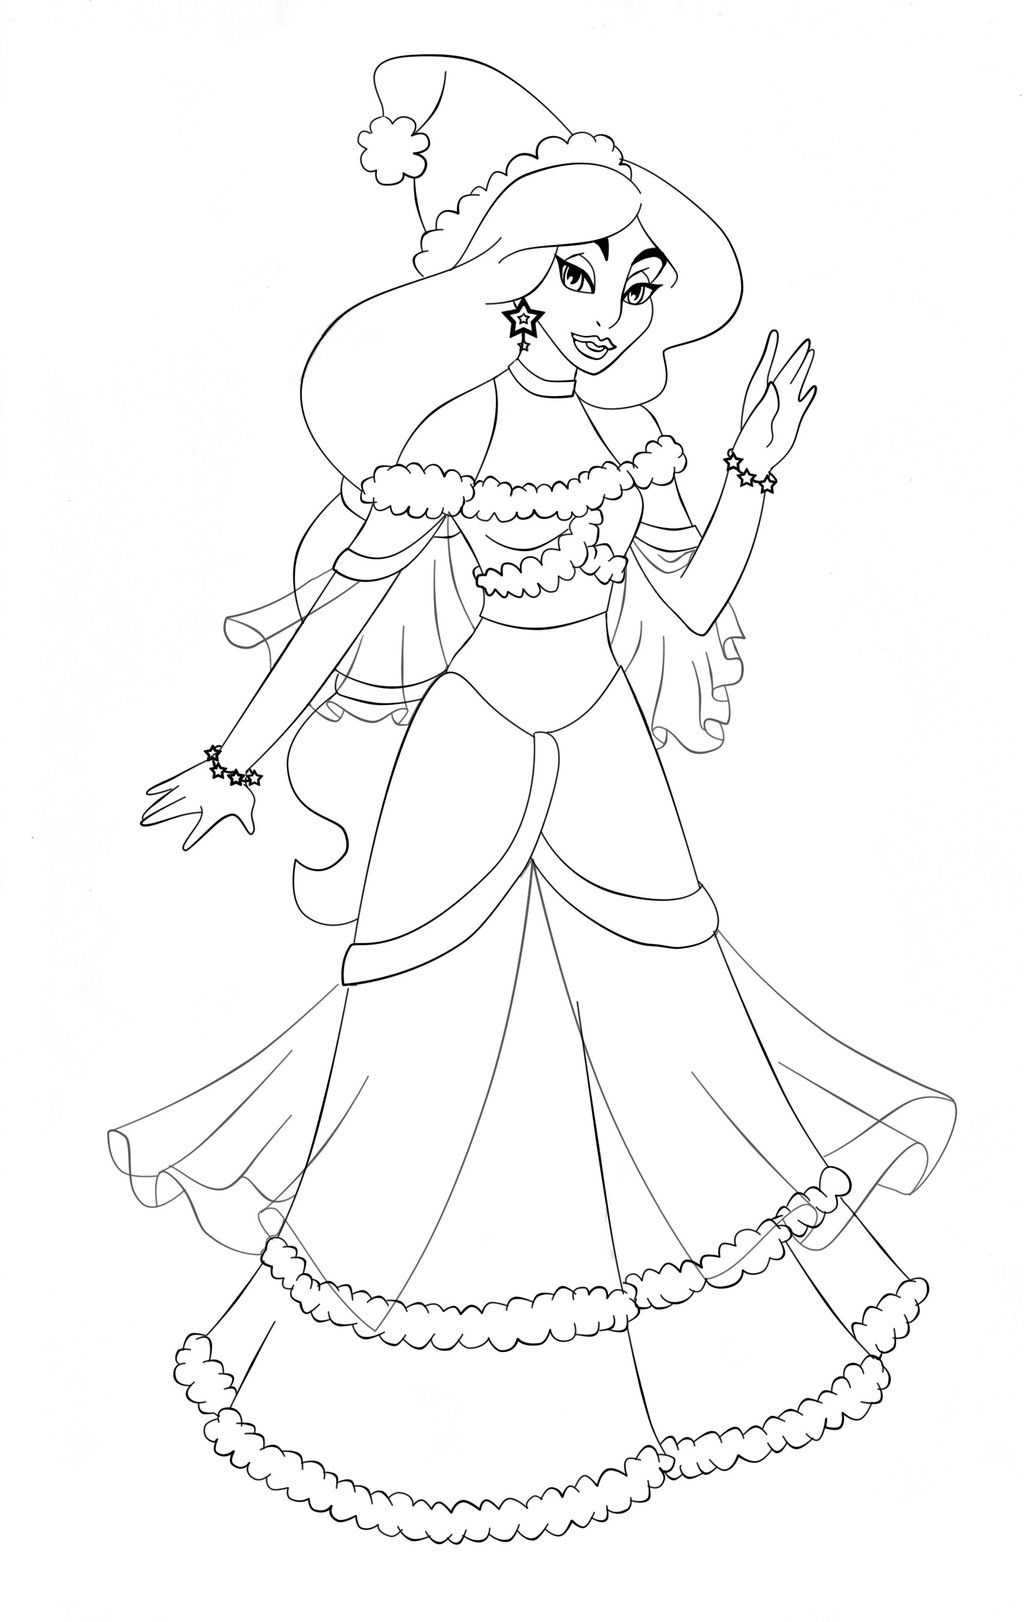 Jasmine Disney Christmas By Paola Tosca On Deviantart Disney Princess Coloring Pages Disney Princess Colors Disney Christmas